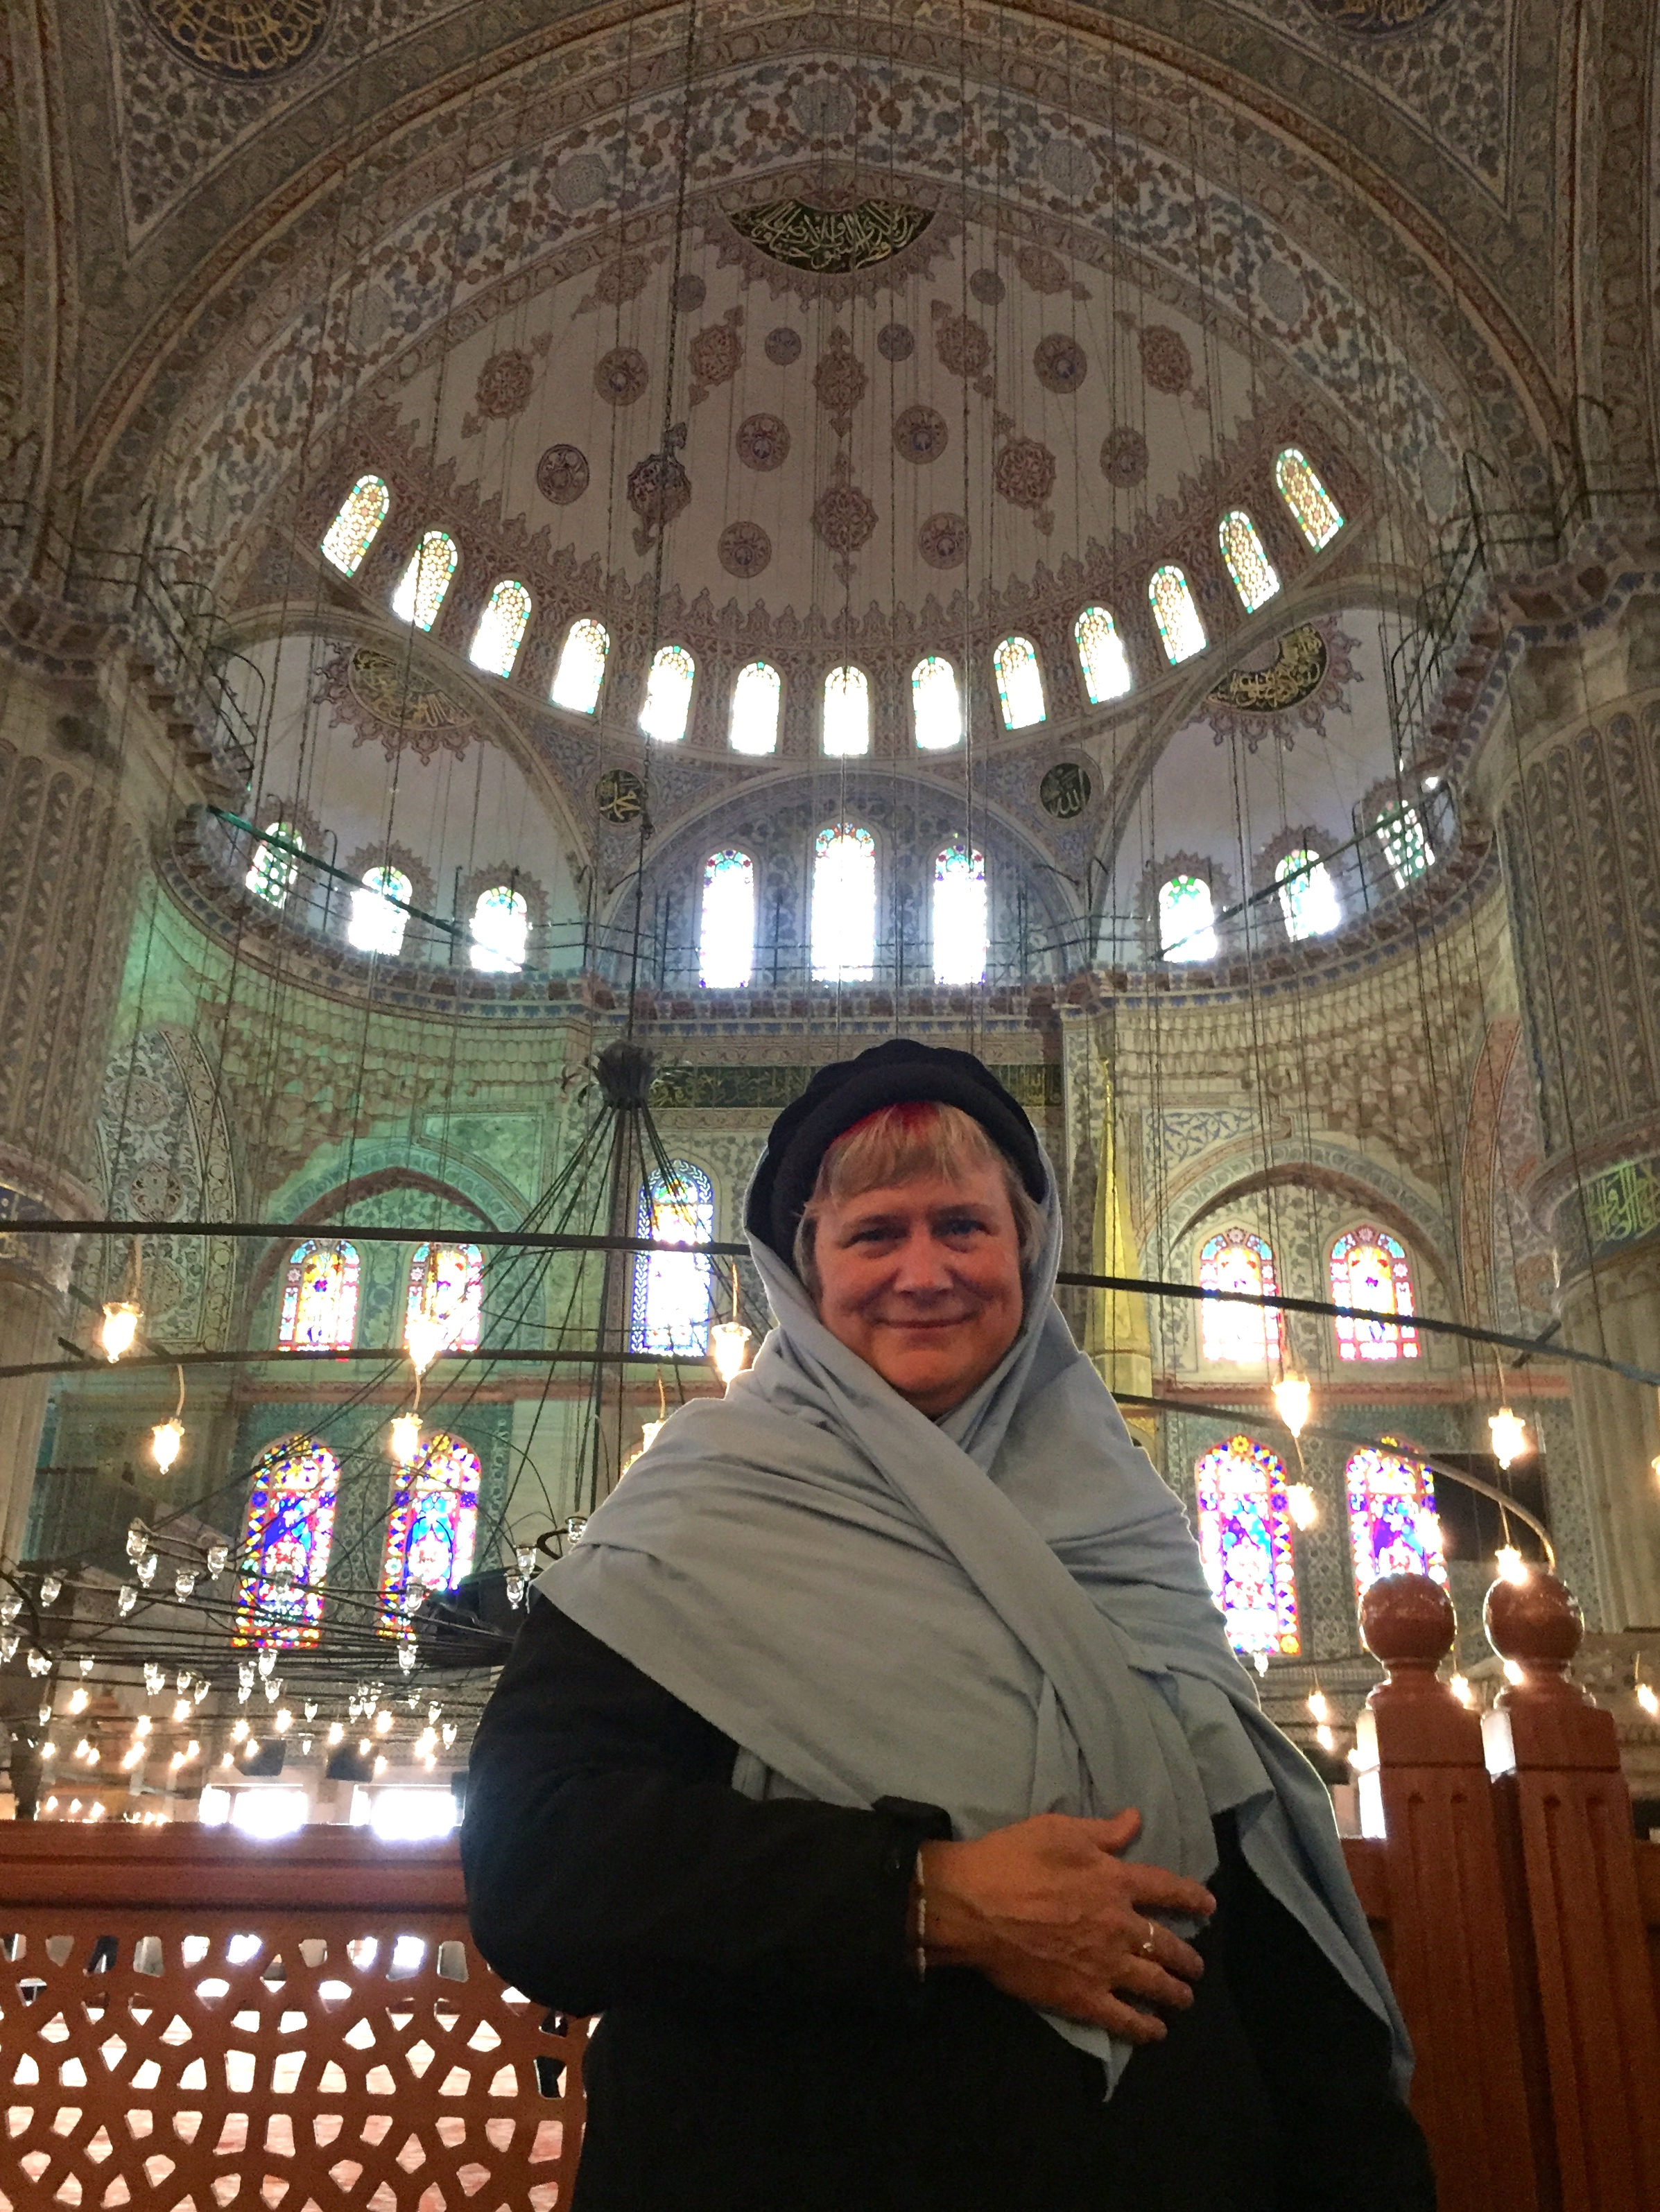 Katy Dickinson at the Istanbul Blue Mosque, Feb 2017